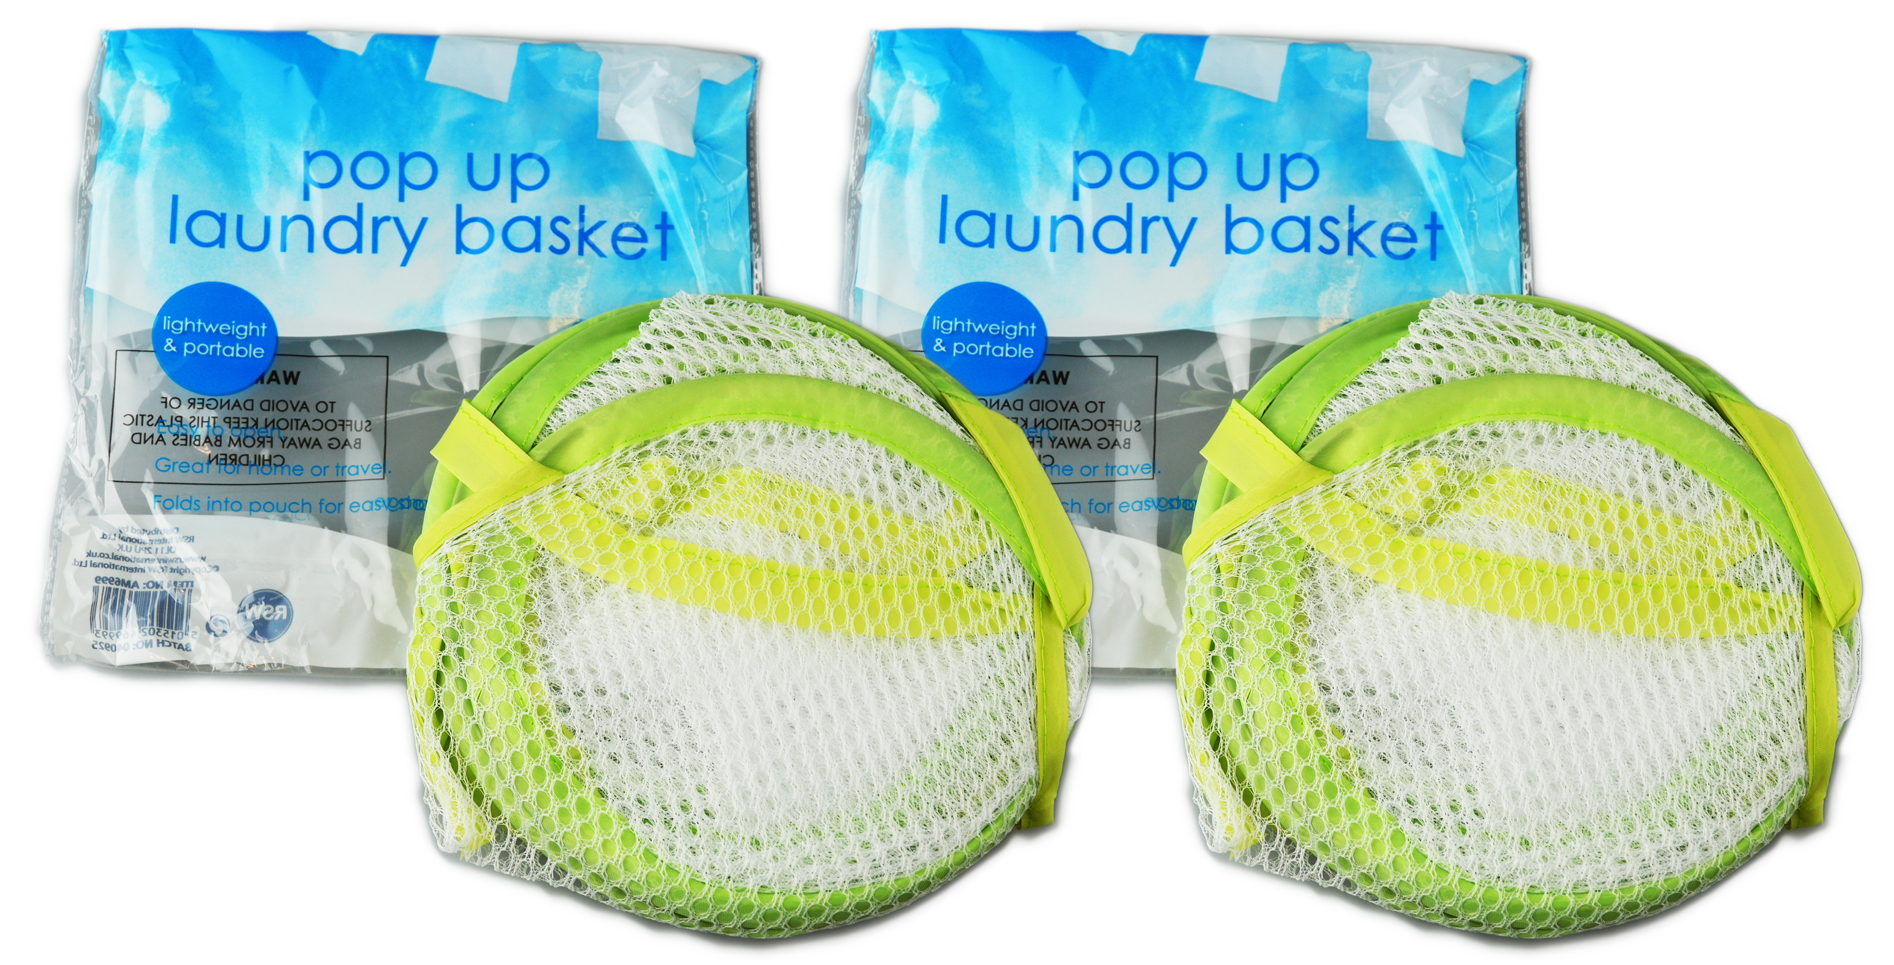 Folding-Mesh-Laundry-Basket-Ideal-for-Home-or-Travel-034-Royle-Home-034 thumbnail 7